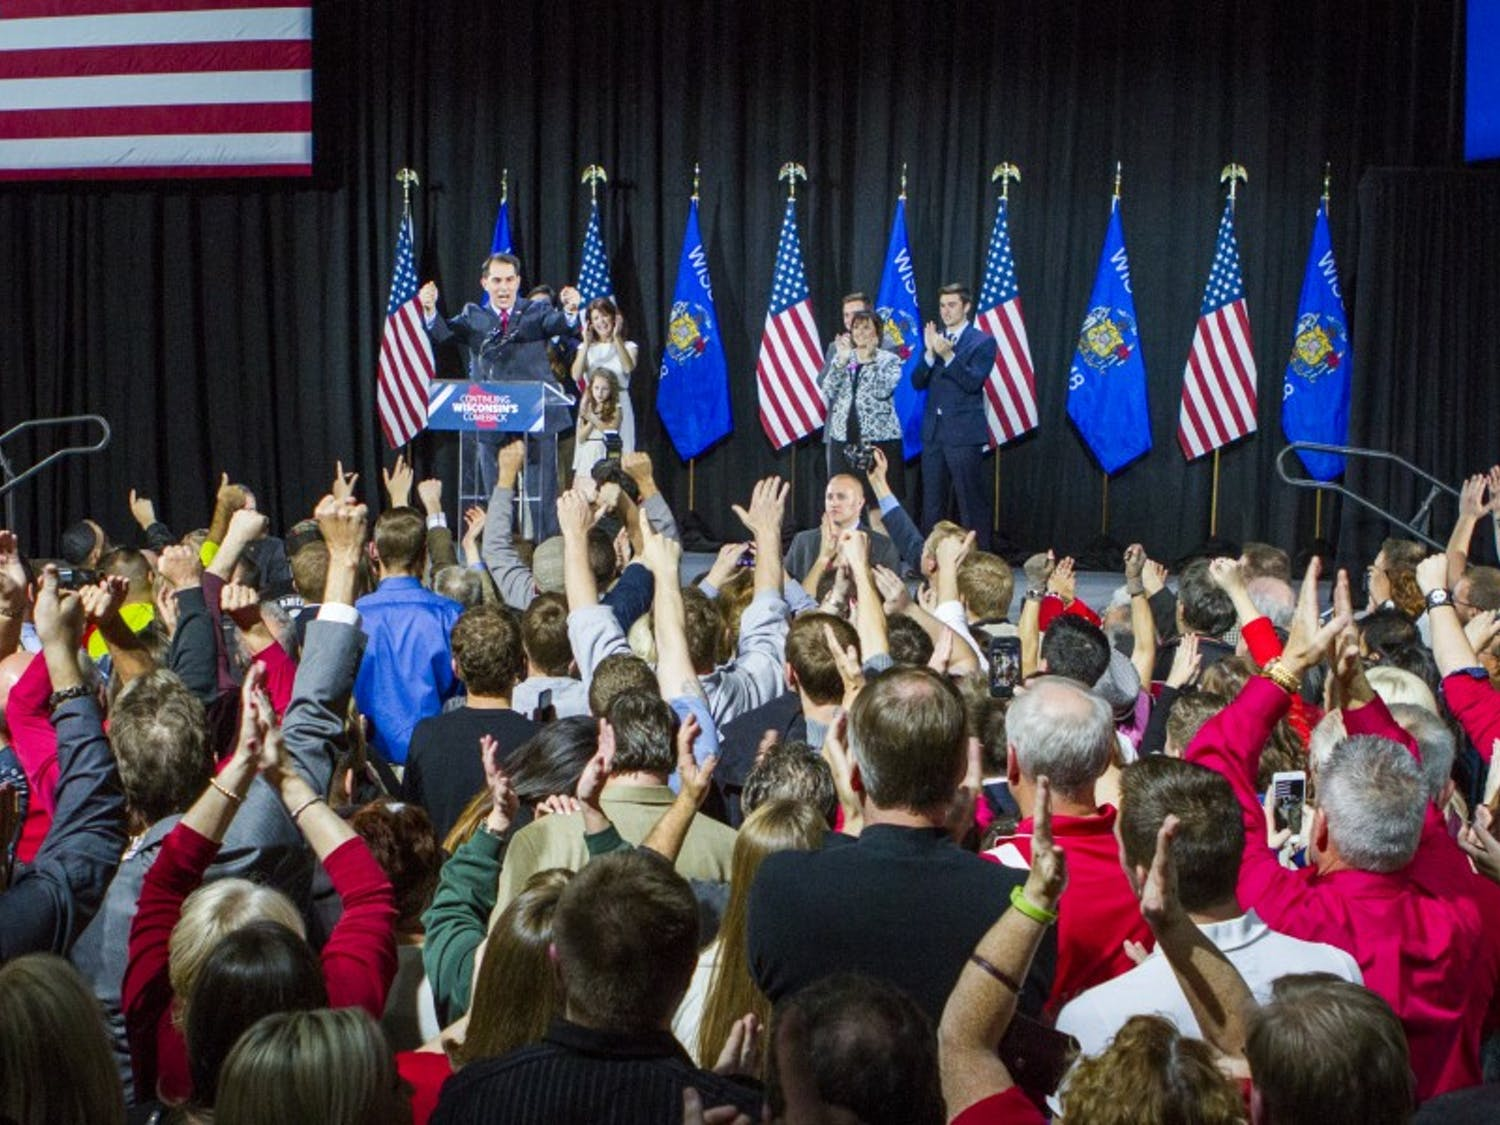 Gov. Scott Walker said in an interview Tuesday that he is strongly considering running for a third term.